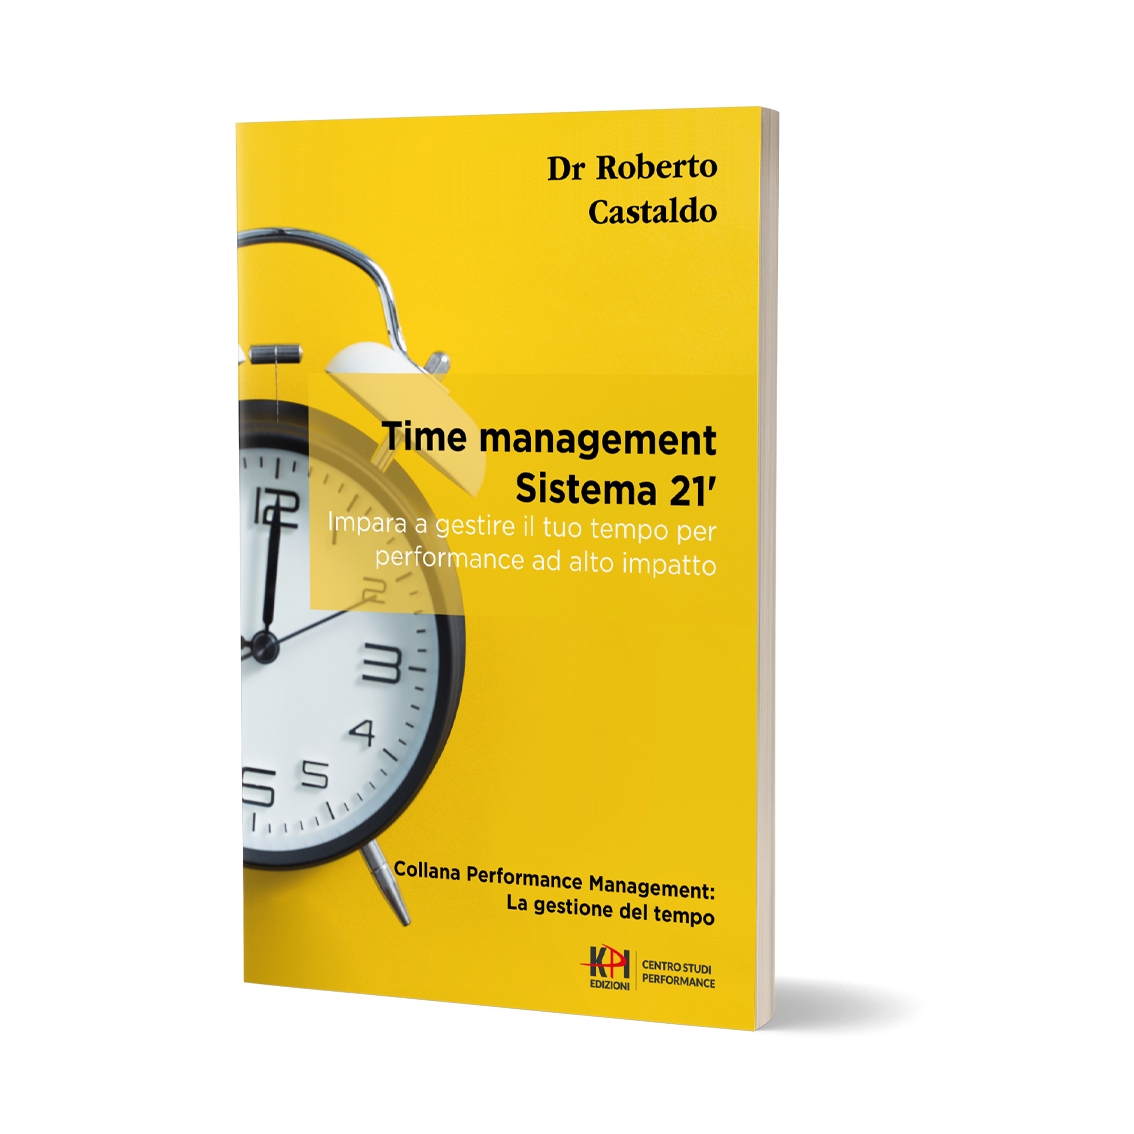 Time management sistema 21'